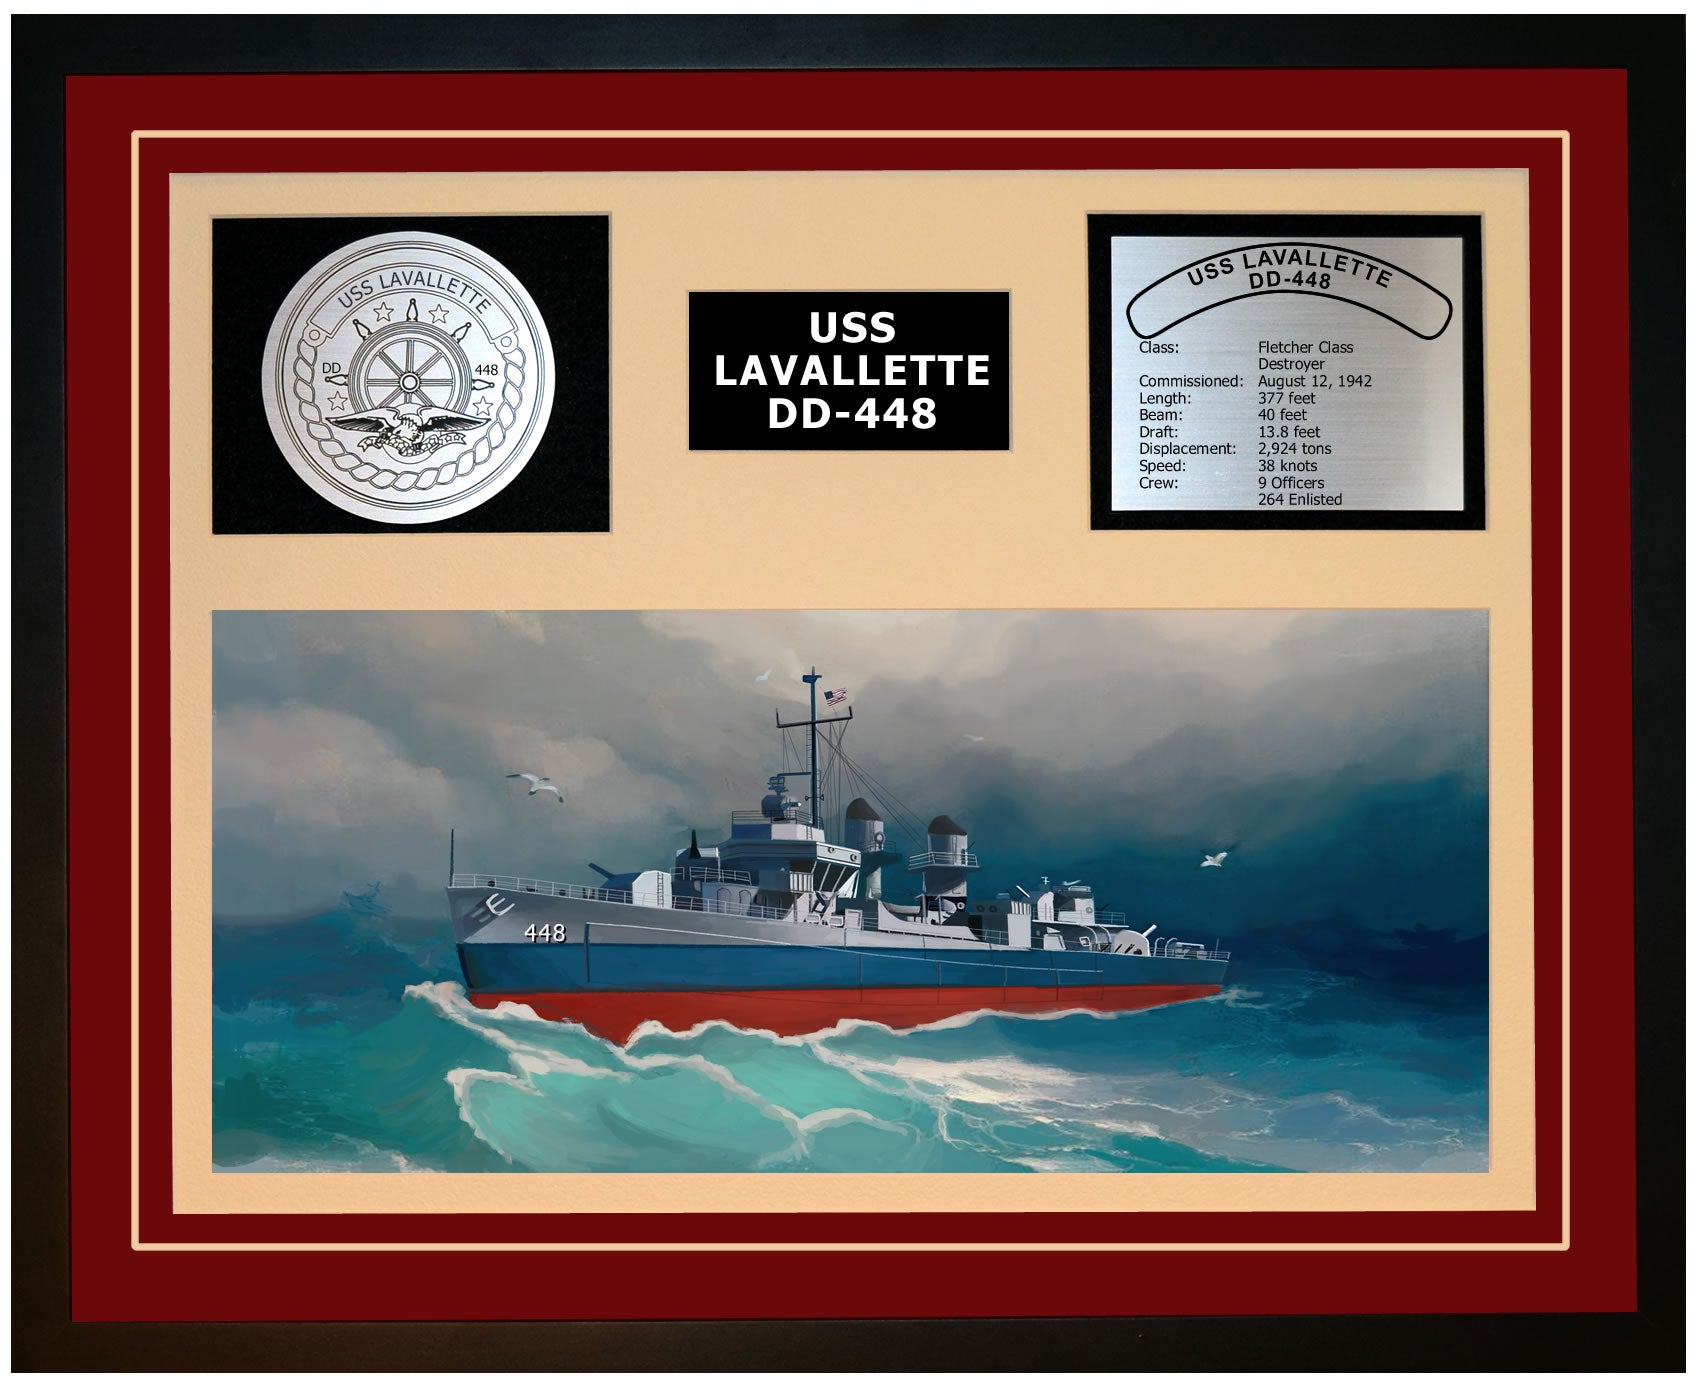 USS LAVALLETTE DD-448 Framed Navy Ship Display Burgundy